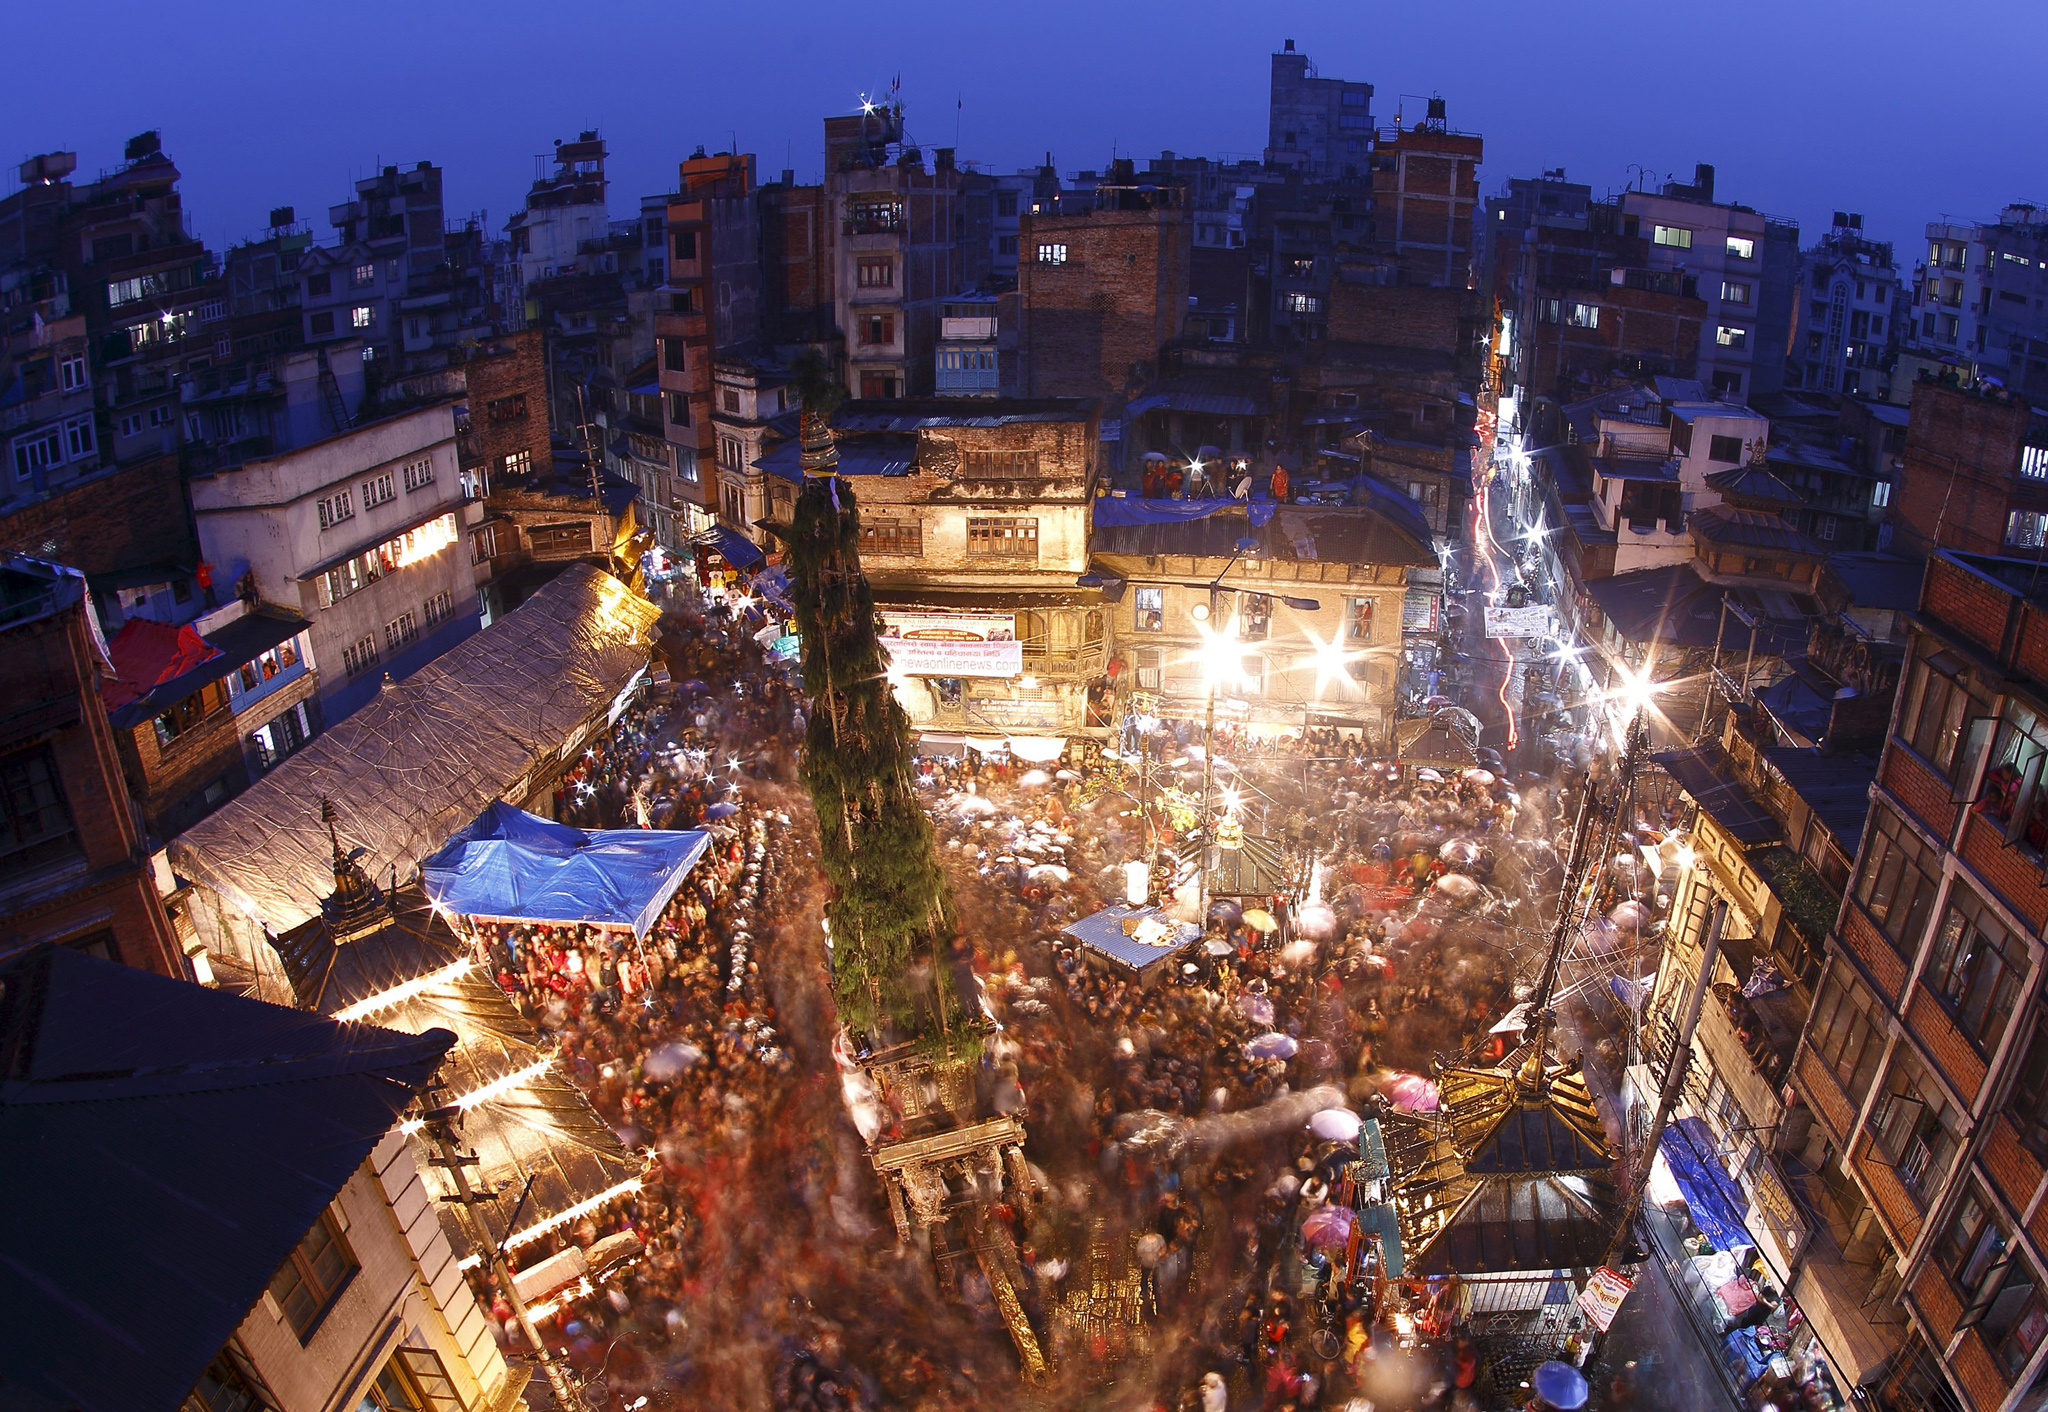 Devotees gather around the chariot of Seto Machindranath during the Seto Machindranath chariot festival at Ashon in Kathmandu...Devotees gather around the chariot of Seto Machindranath (C) during the Seto Machindranath chariot festival at Ashon in Kathmandu March 27, 2015. The Seto Machindranath chariot festival is celebrated to pray for rainfall and good harvest for the upcoming year. REUTERS/Navesh Chitrakar      TPX IMAGES OF THE DAY           TPX IMAGES OF THE DAY